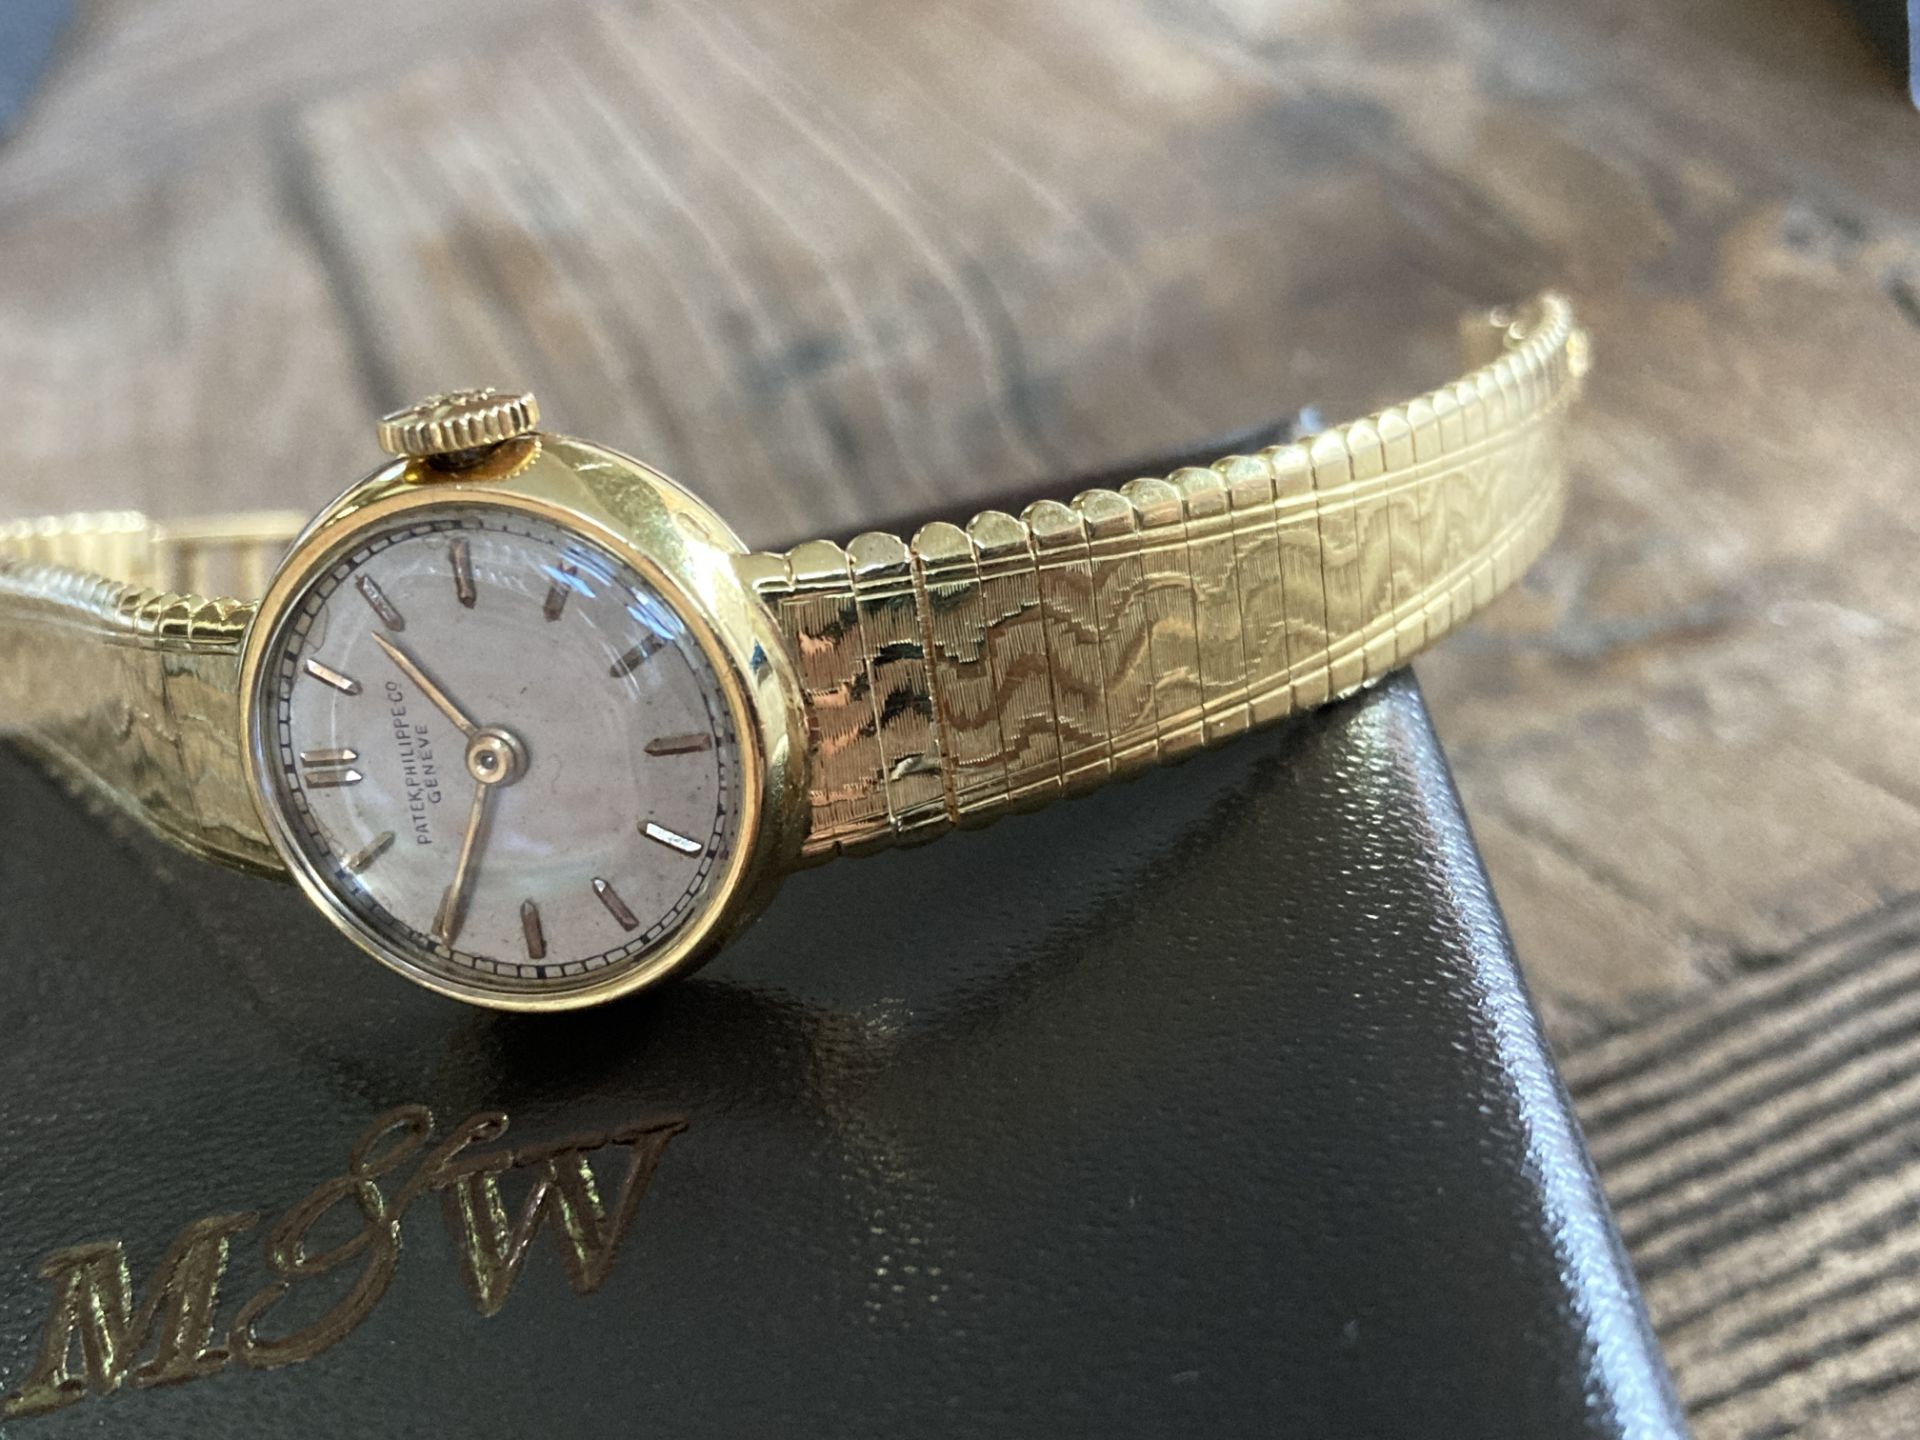 PATEK PHILIPPE 18CT YELLOW GOLD WATCH (WEIGHT: 34.1G) CASE SIZE 20MM APPROX - Image 3 of 6